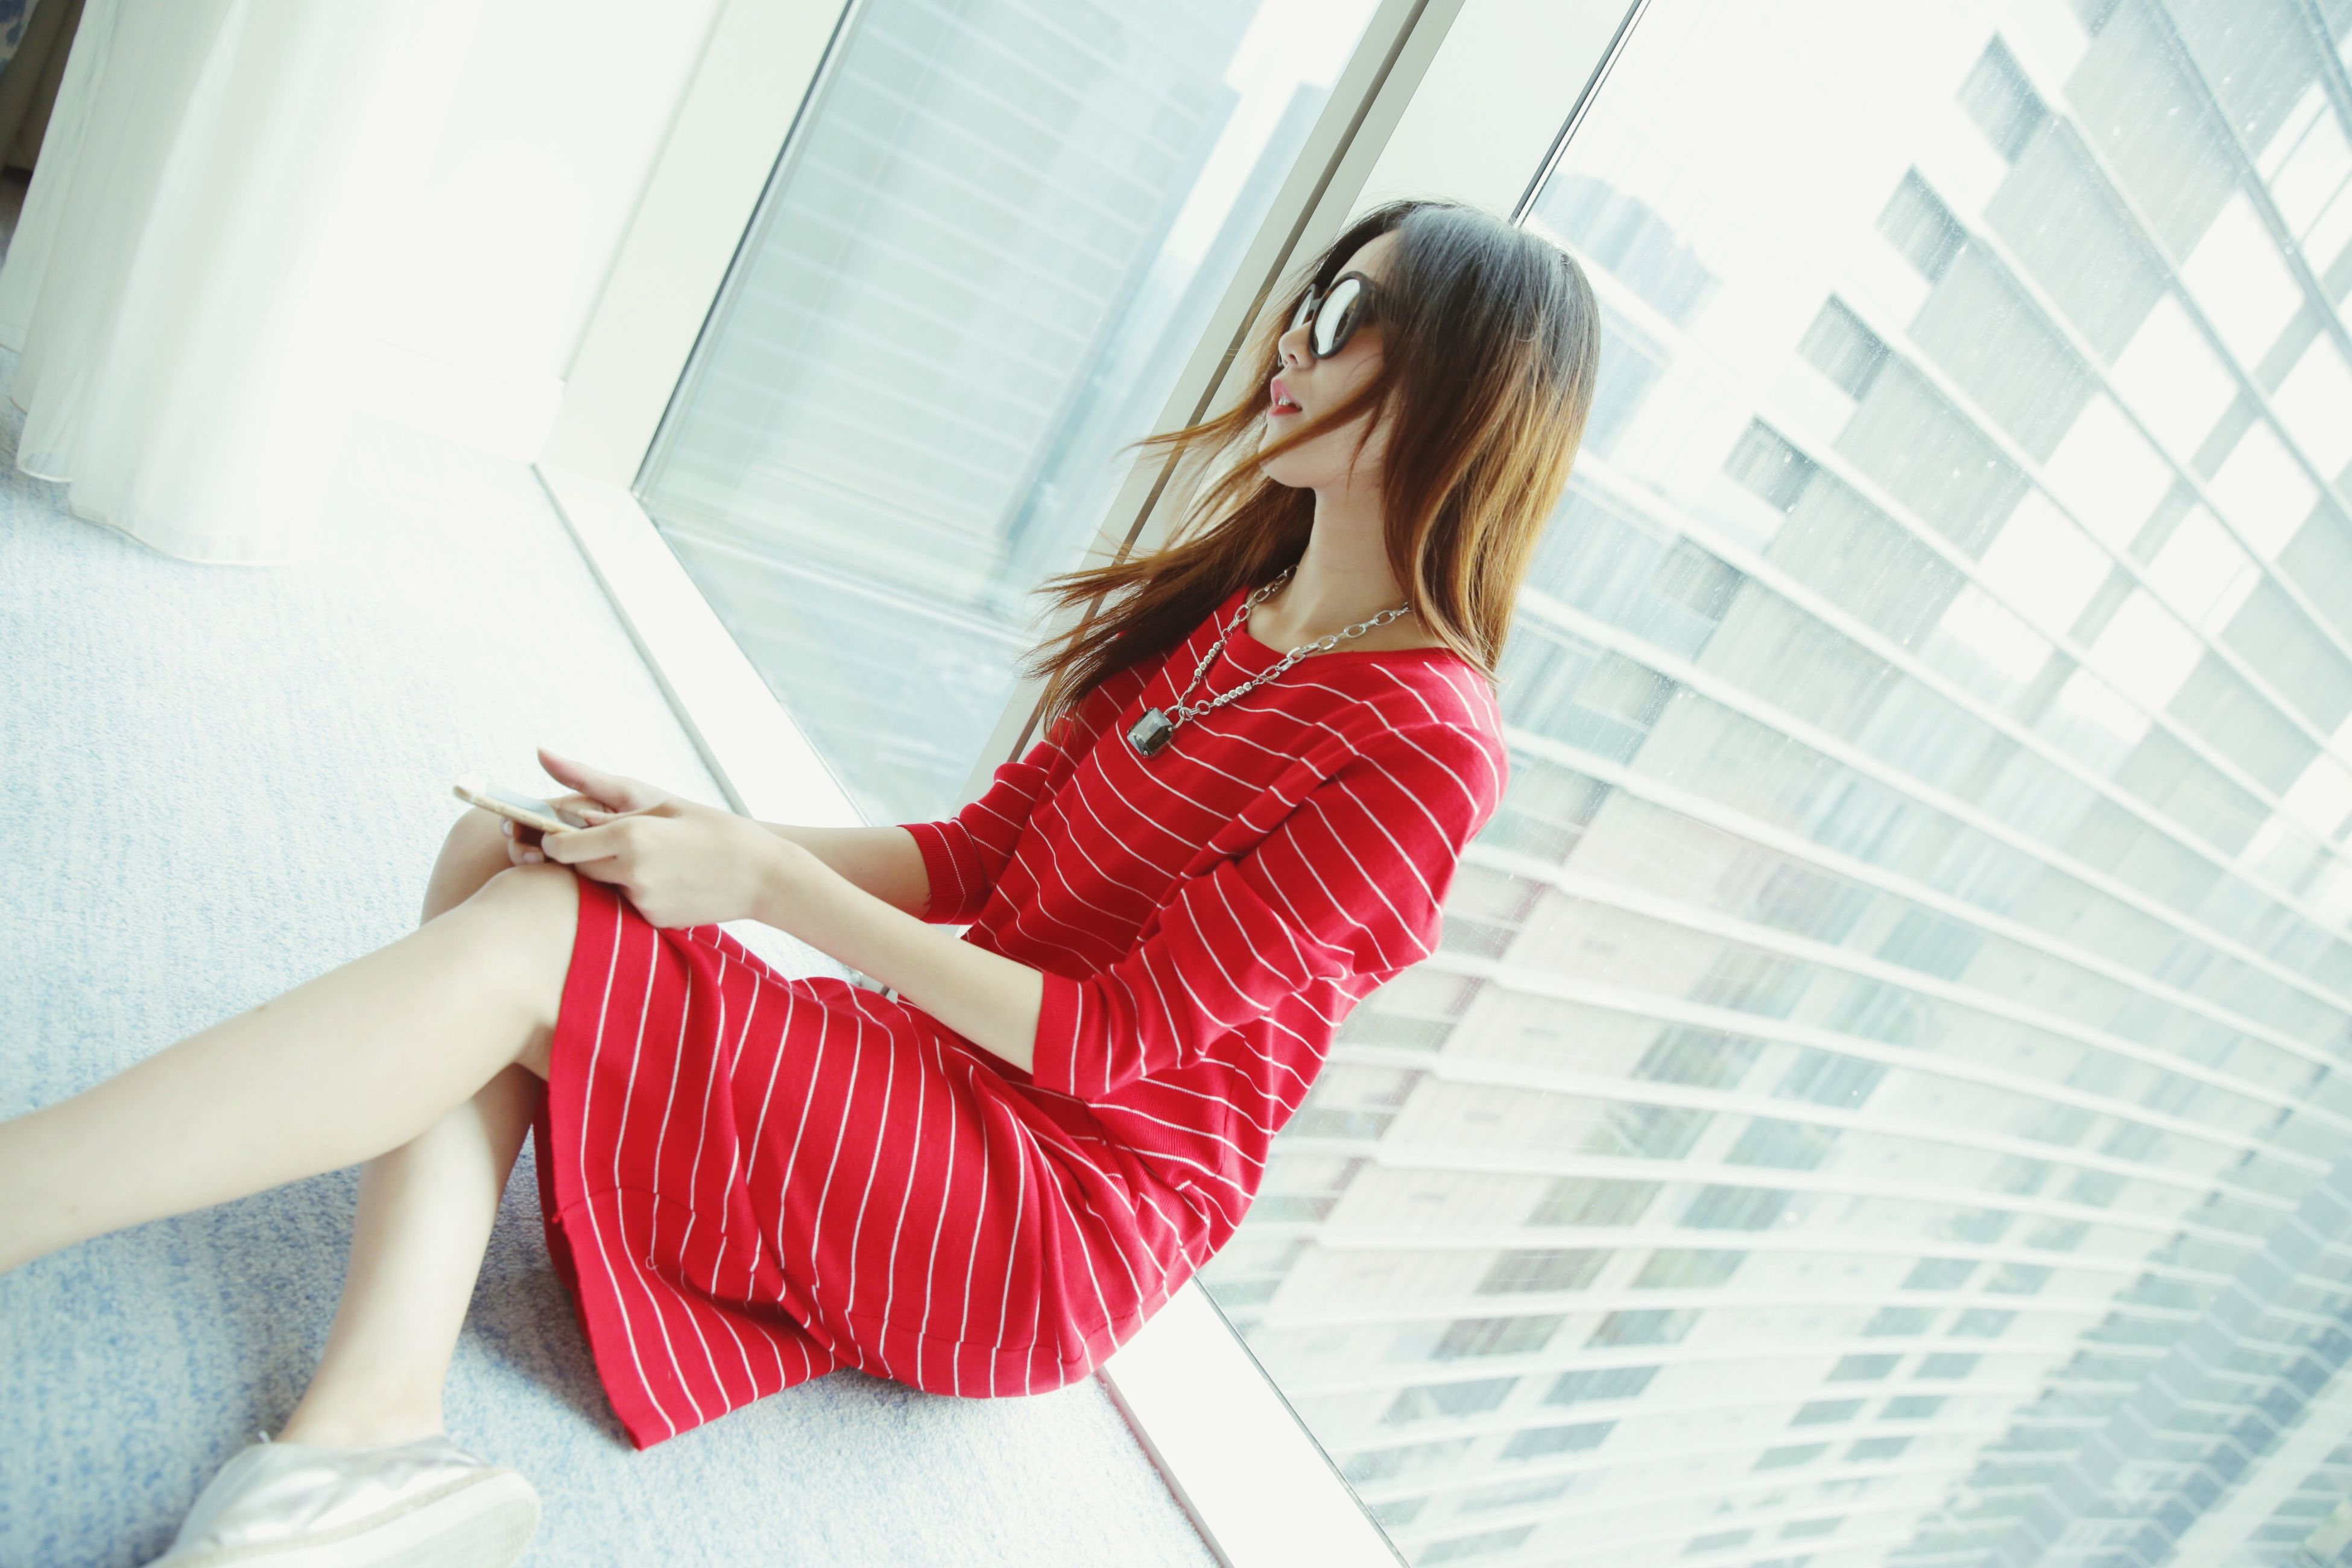 indoors, lifestyles, young women, young adult, red, home interior, sensuality, femininity, person, leisure activity, casual clothing, dress, holding, curtain, sitting, long hair